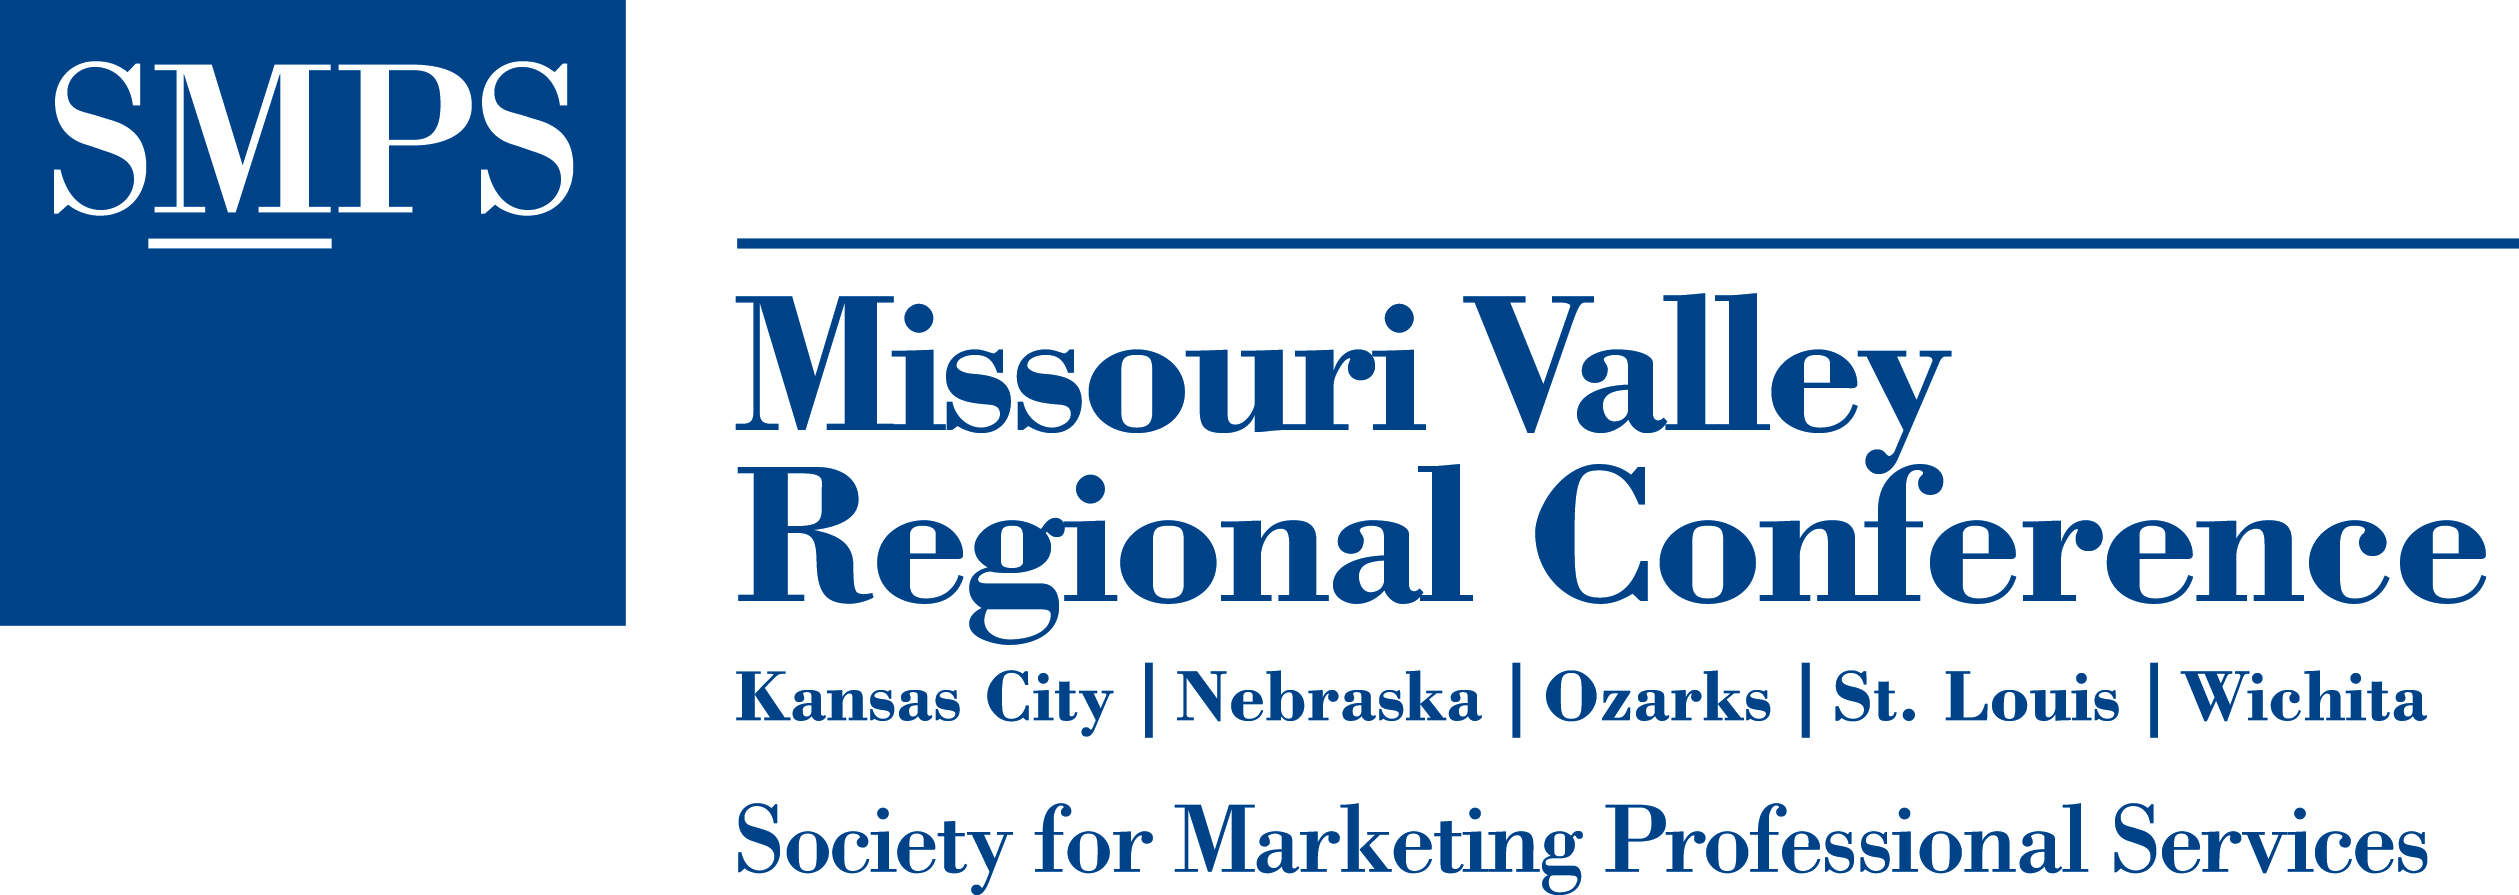 Missouri Valley Regional Conference SMPS Logo